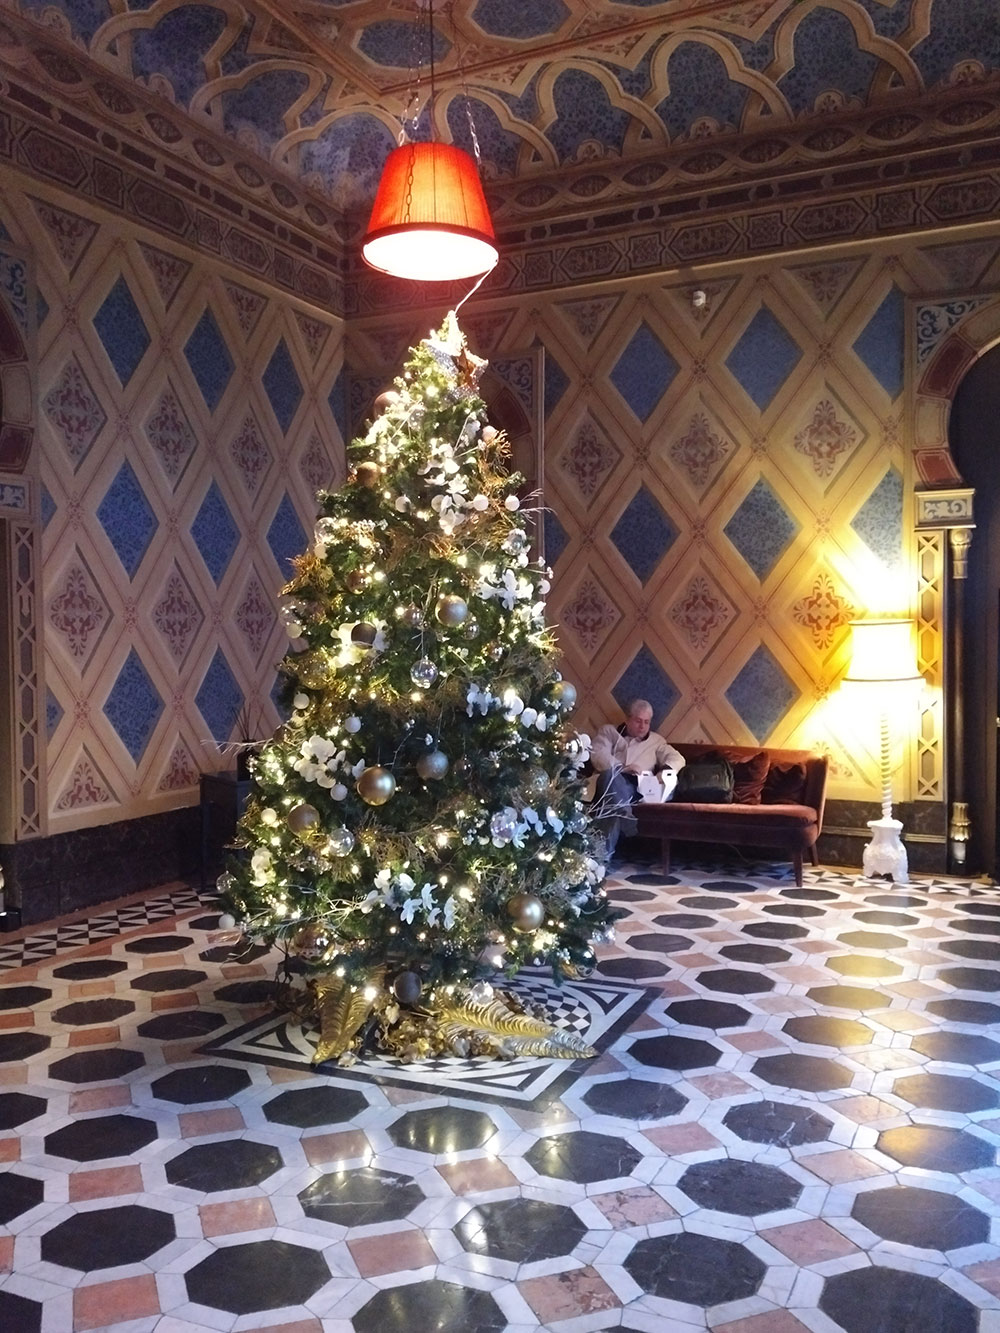 Beautiful Christmas tree spotted in this rather gorgeous Arab-influenced lobby